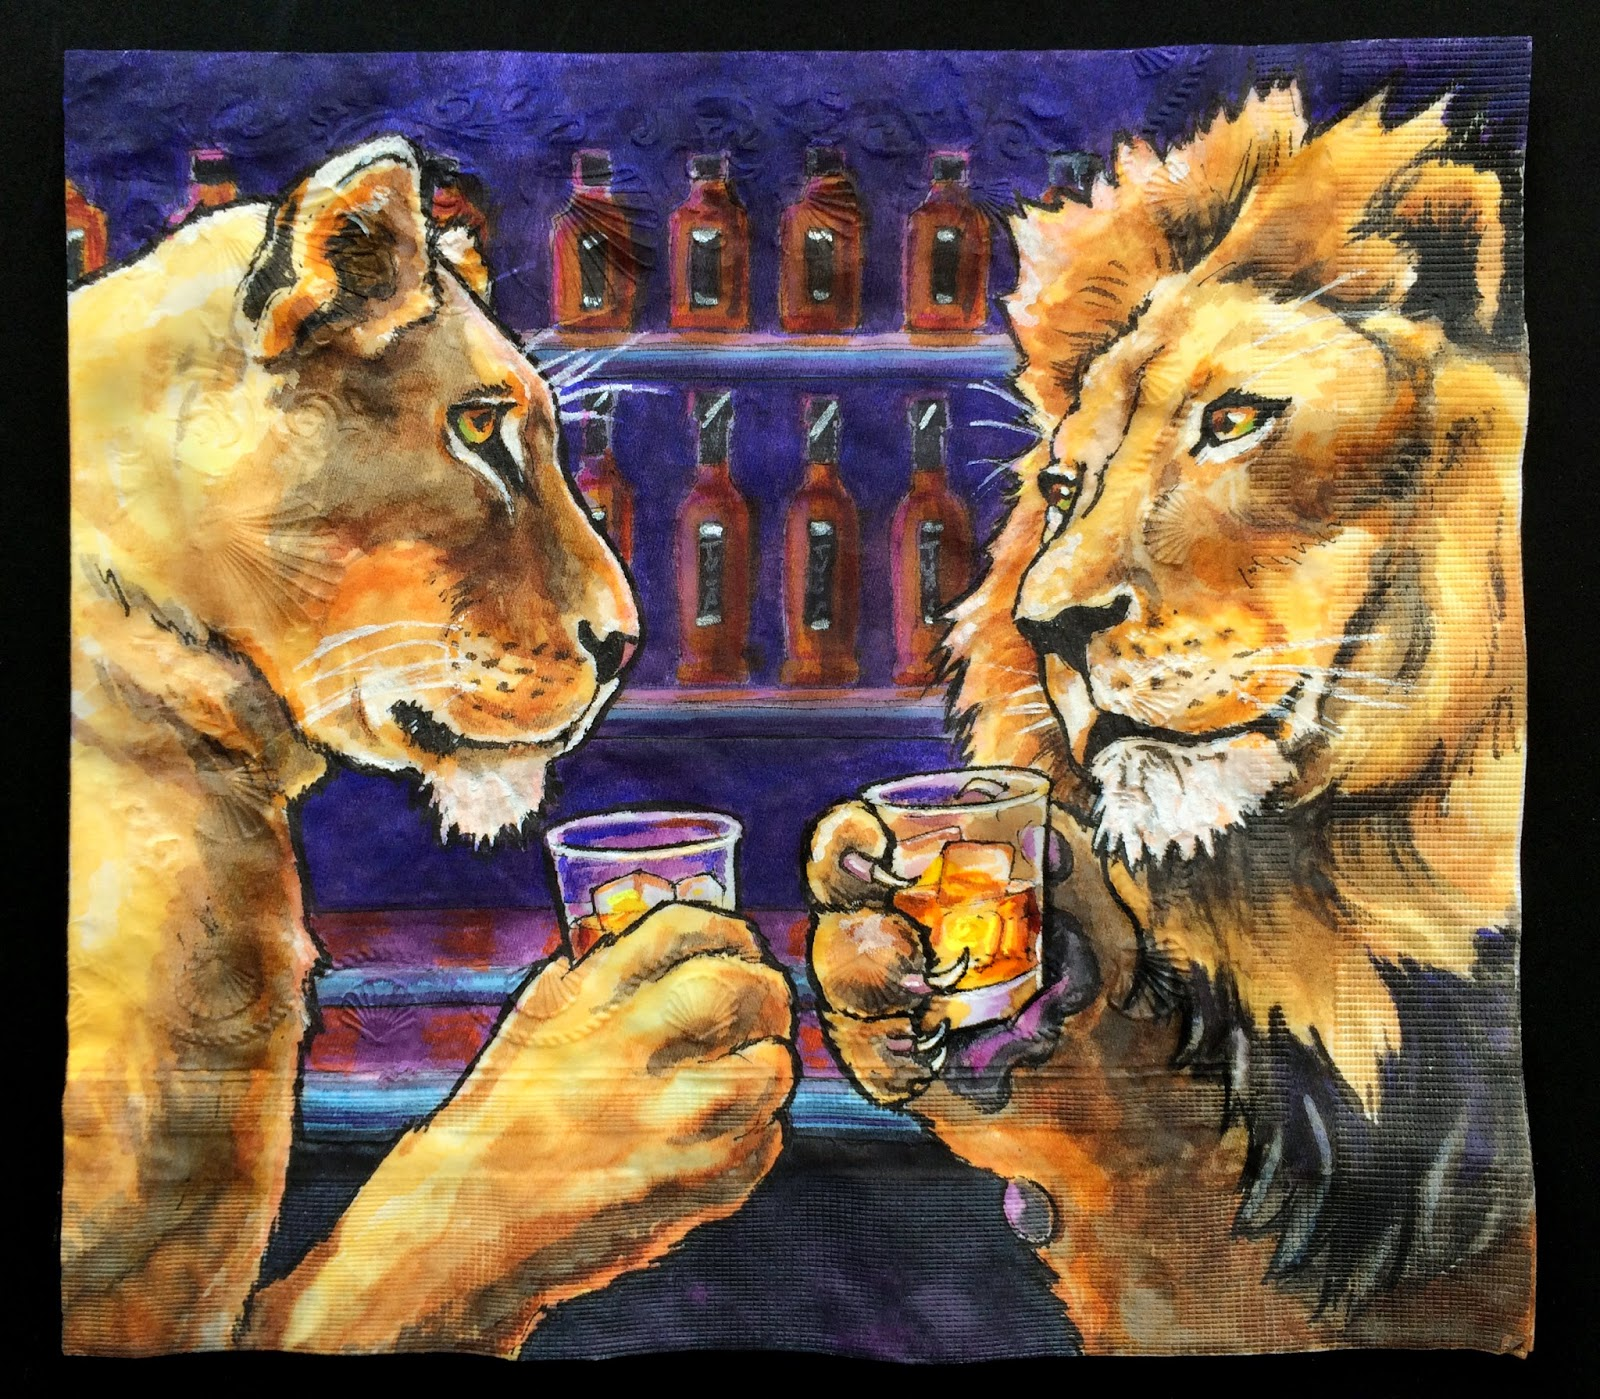 http://ninaslevy.blogspot.com/2014/04/lions-with-liqueur.html